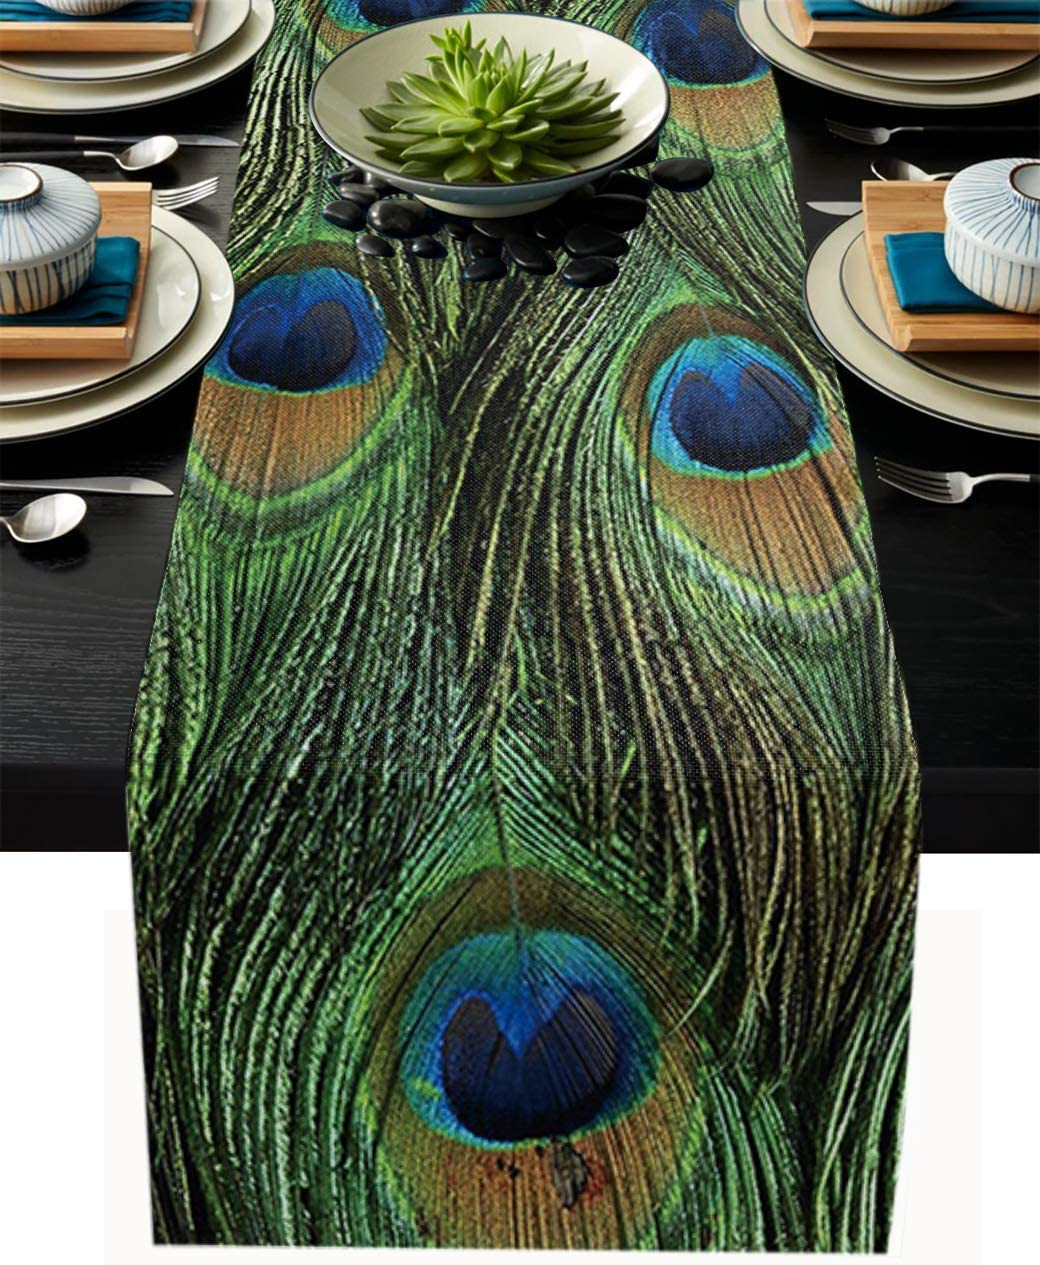 Table Runner 72 Inches Long for Dining Coffee Table, Animal Peacock Feather Texture, Burlap Rectangle Table Cloth Decor Dress Scarf Birthday Wedding Holiday Party, 18''x 72''